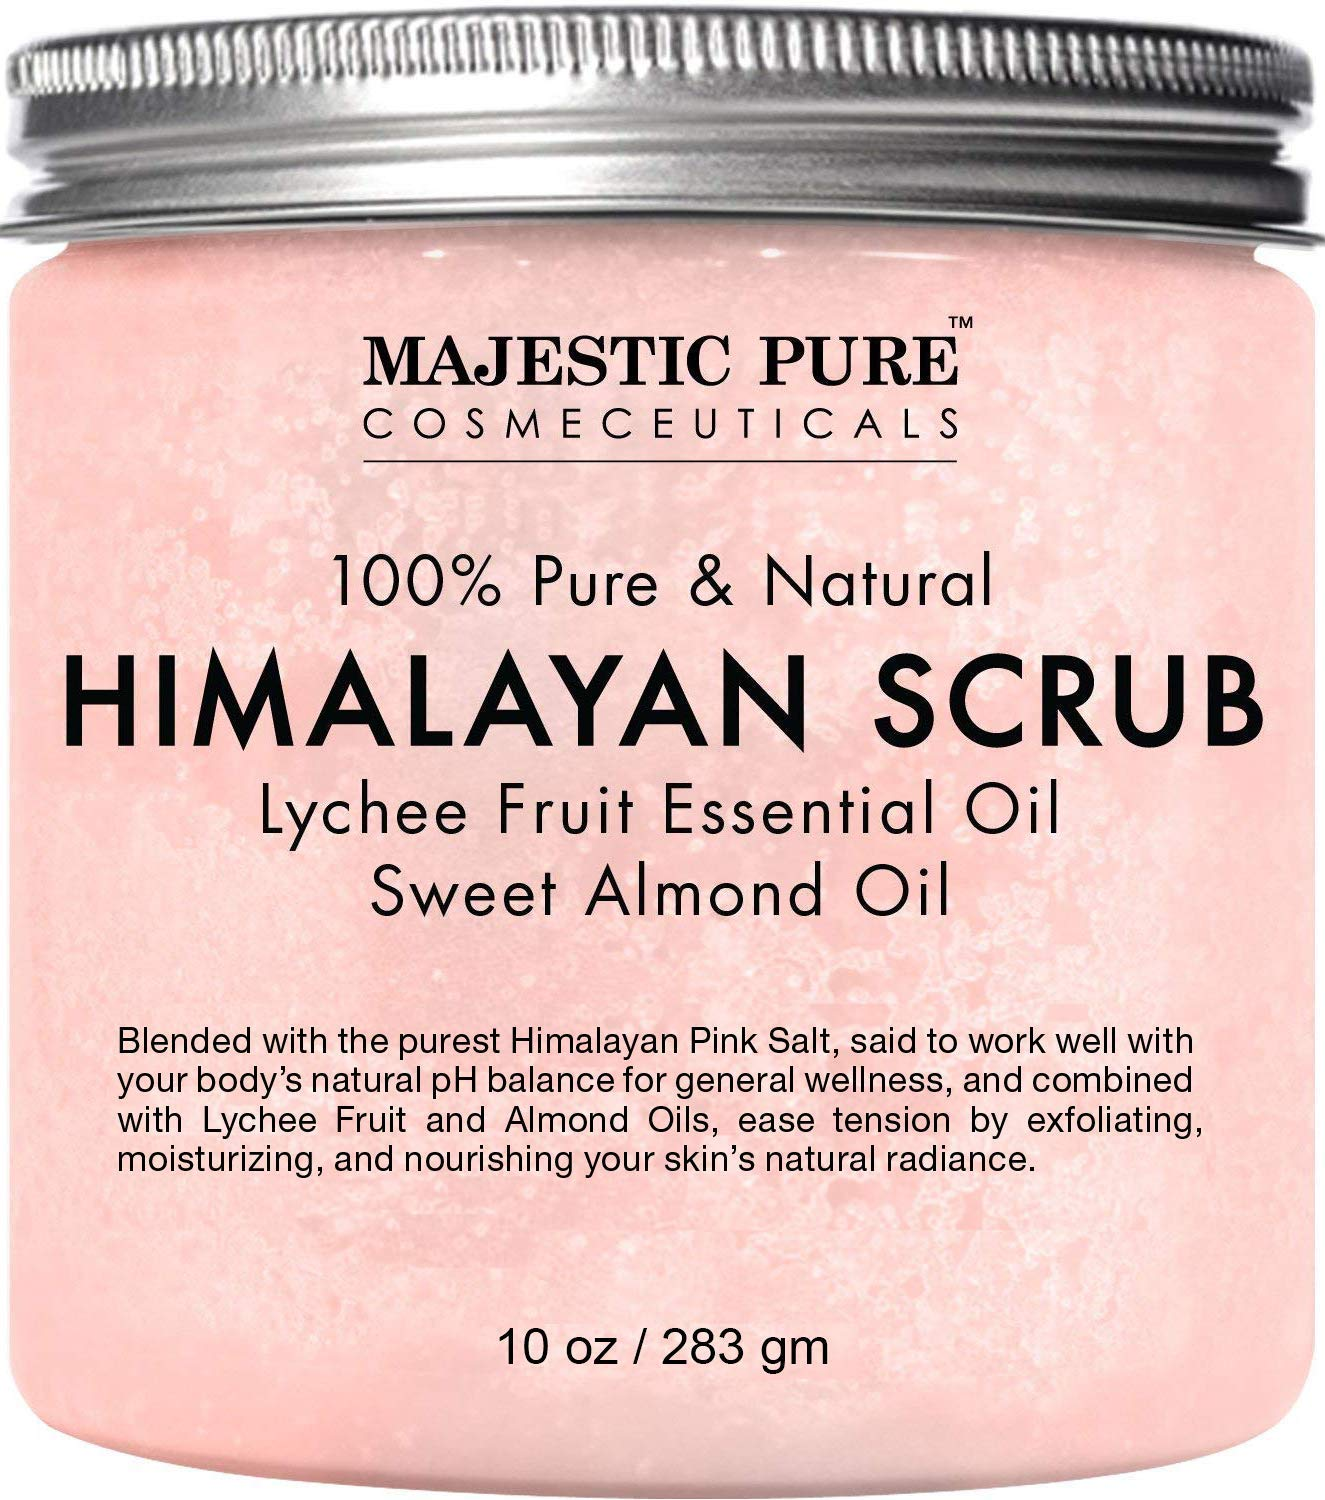 Majestic Pure Himalayan Salt Body Scrub with Lychee Essential Oil, All Natural Scrub to Exfoliate & Moisturize Skin